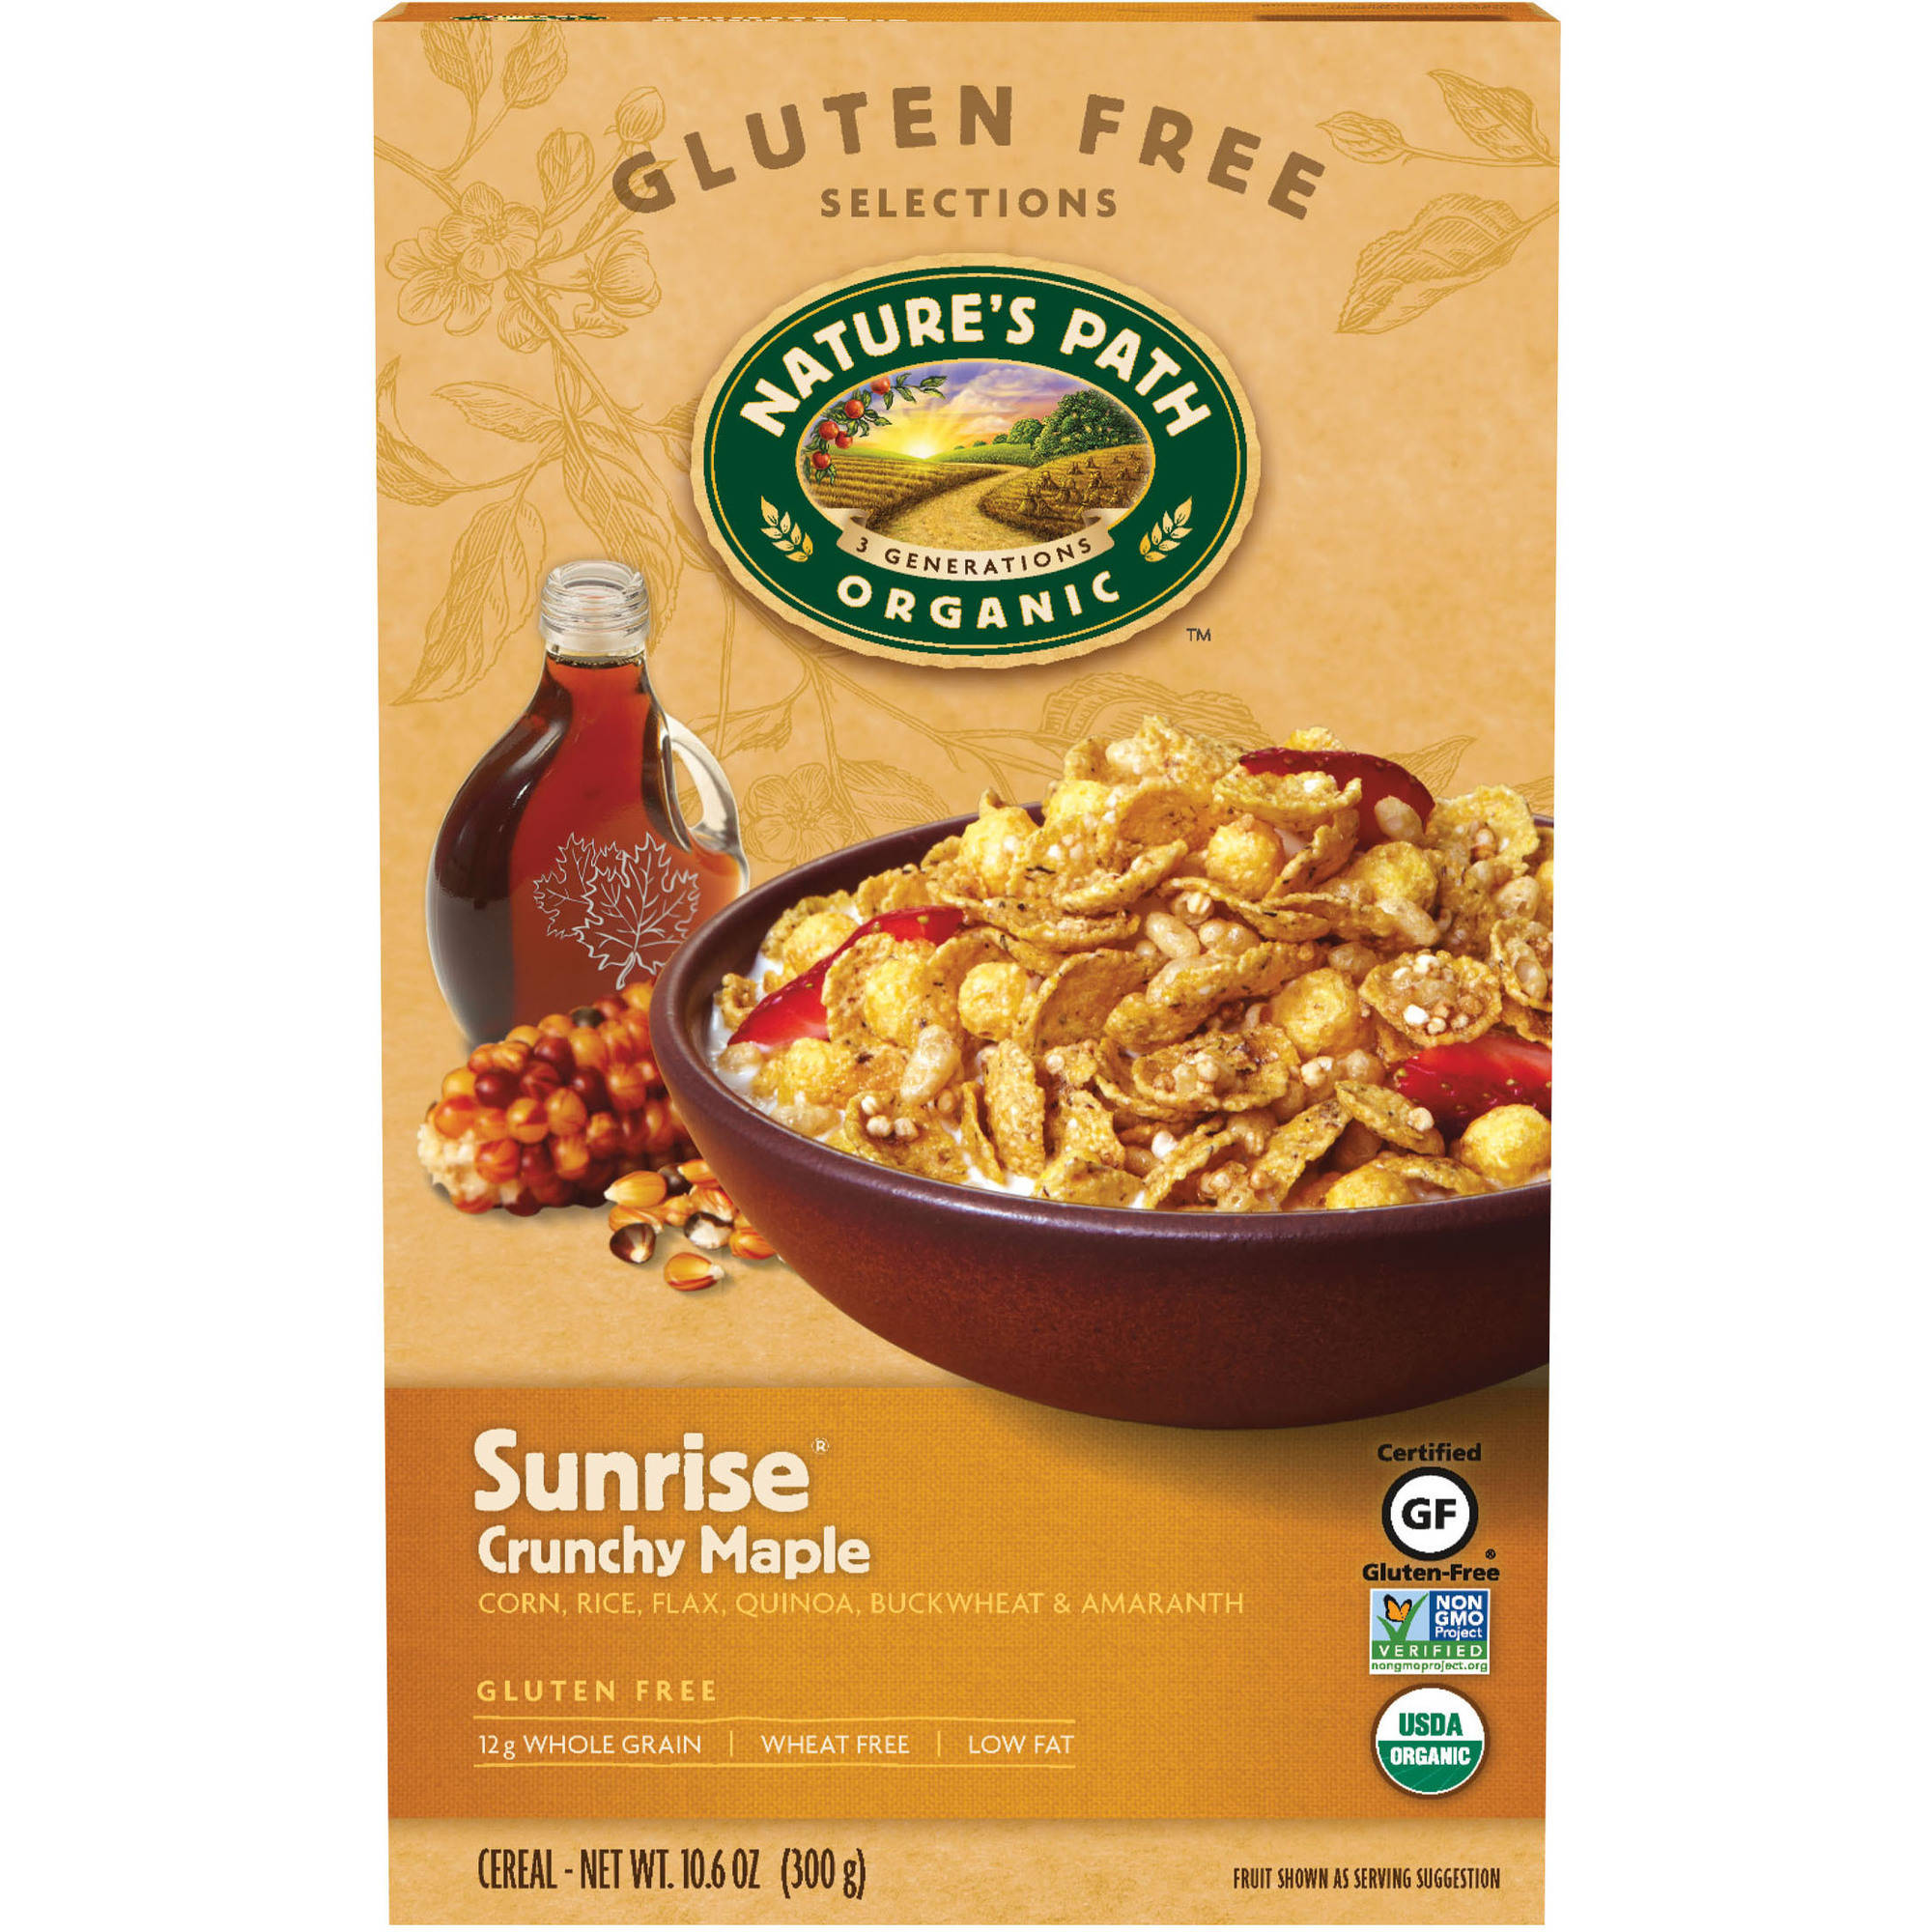 Natures Path Natures Path Organic Gluten Free Selections Cereal, 10.6 oz